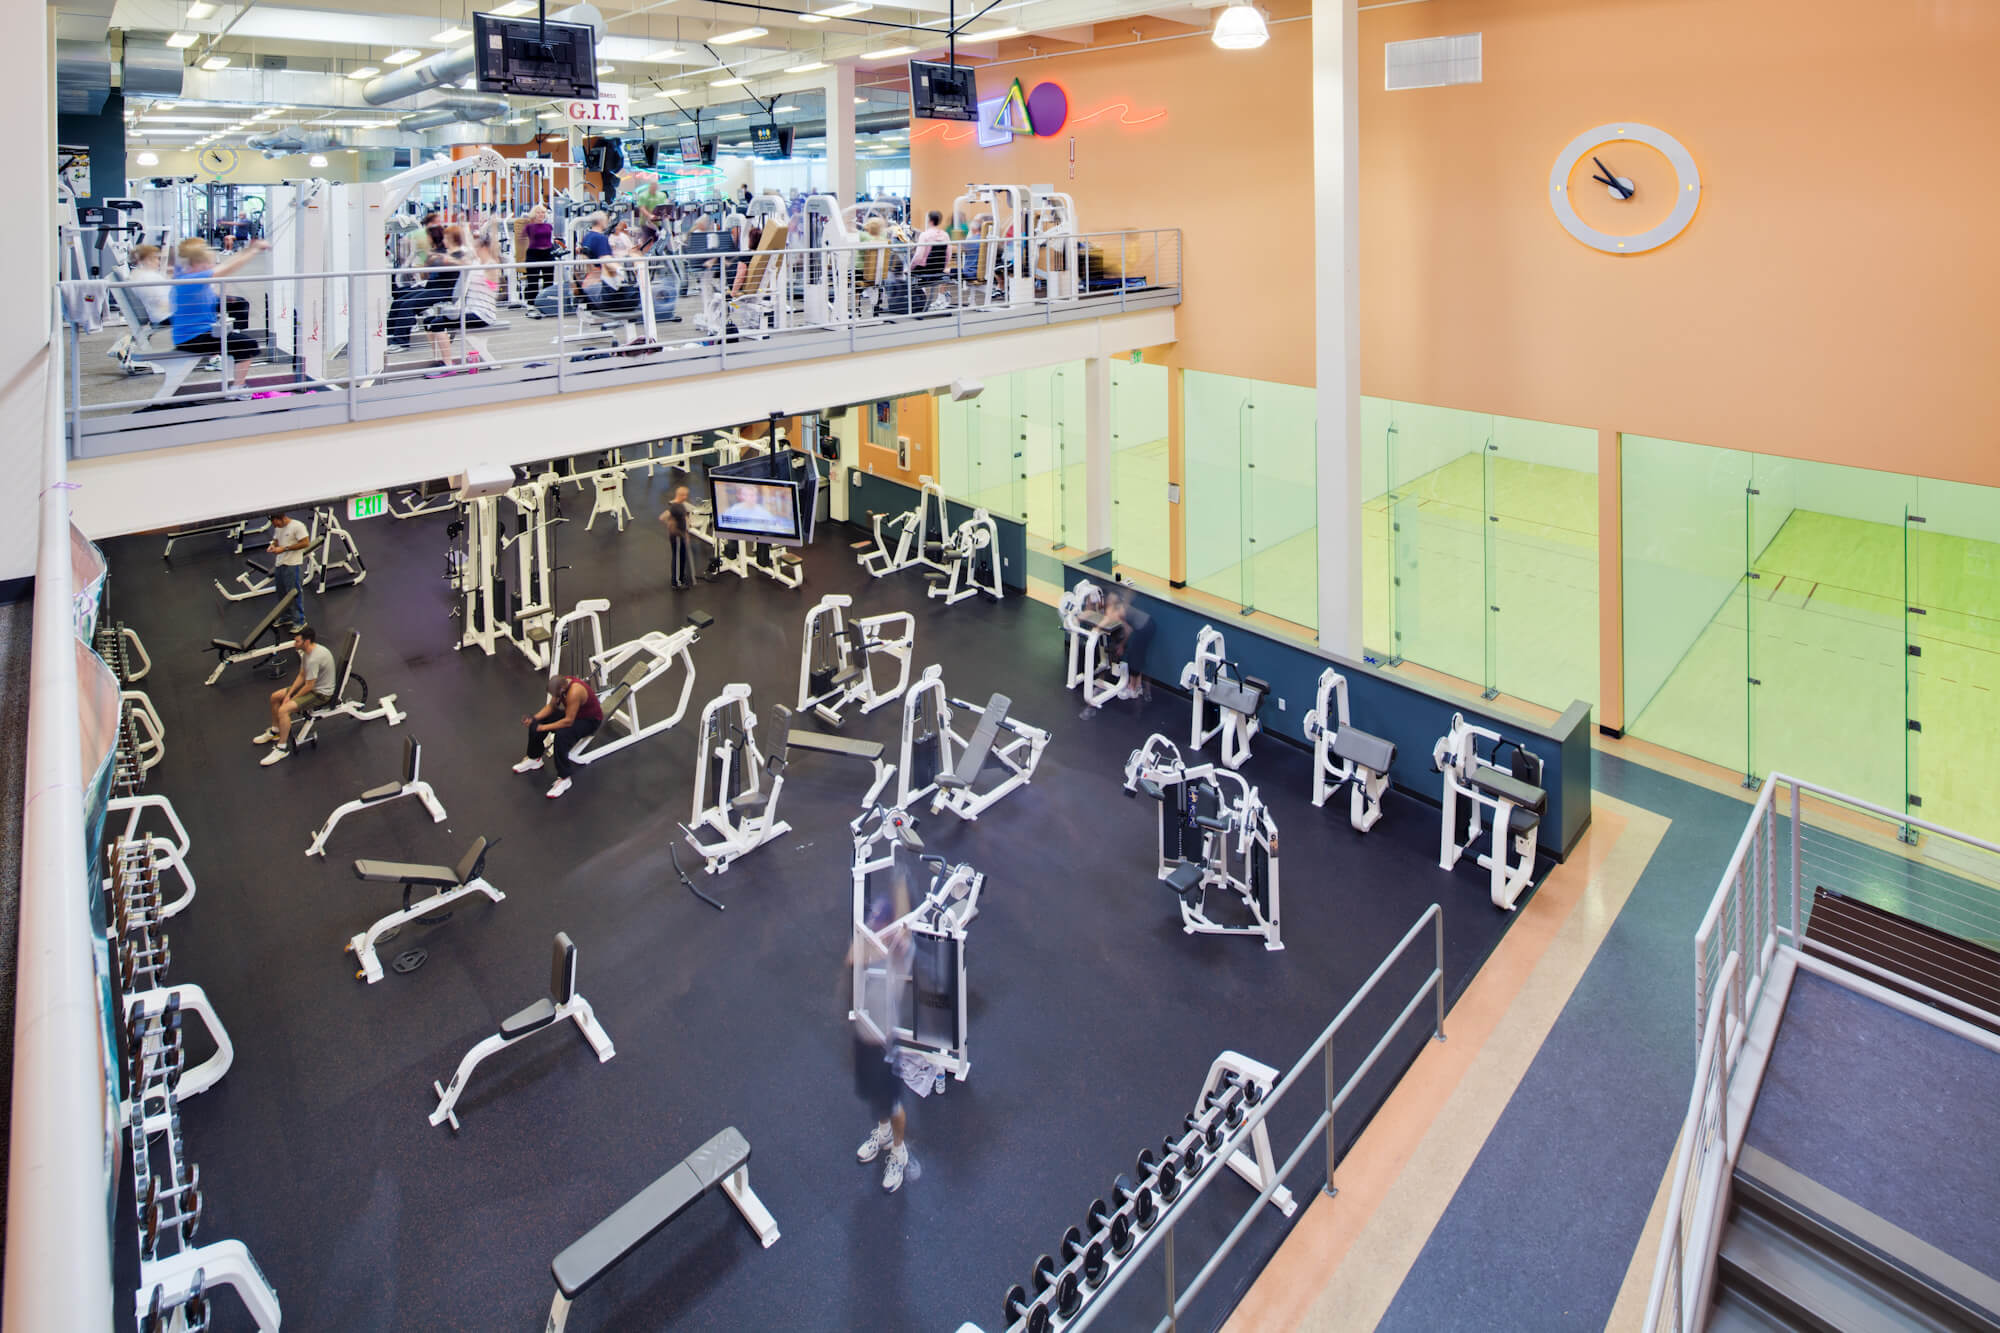 c82be974c4 California Family Fitness is a chain of locally owned and operated gyms  located in the Sacramento, California area with 19 ...